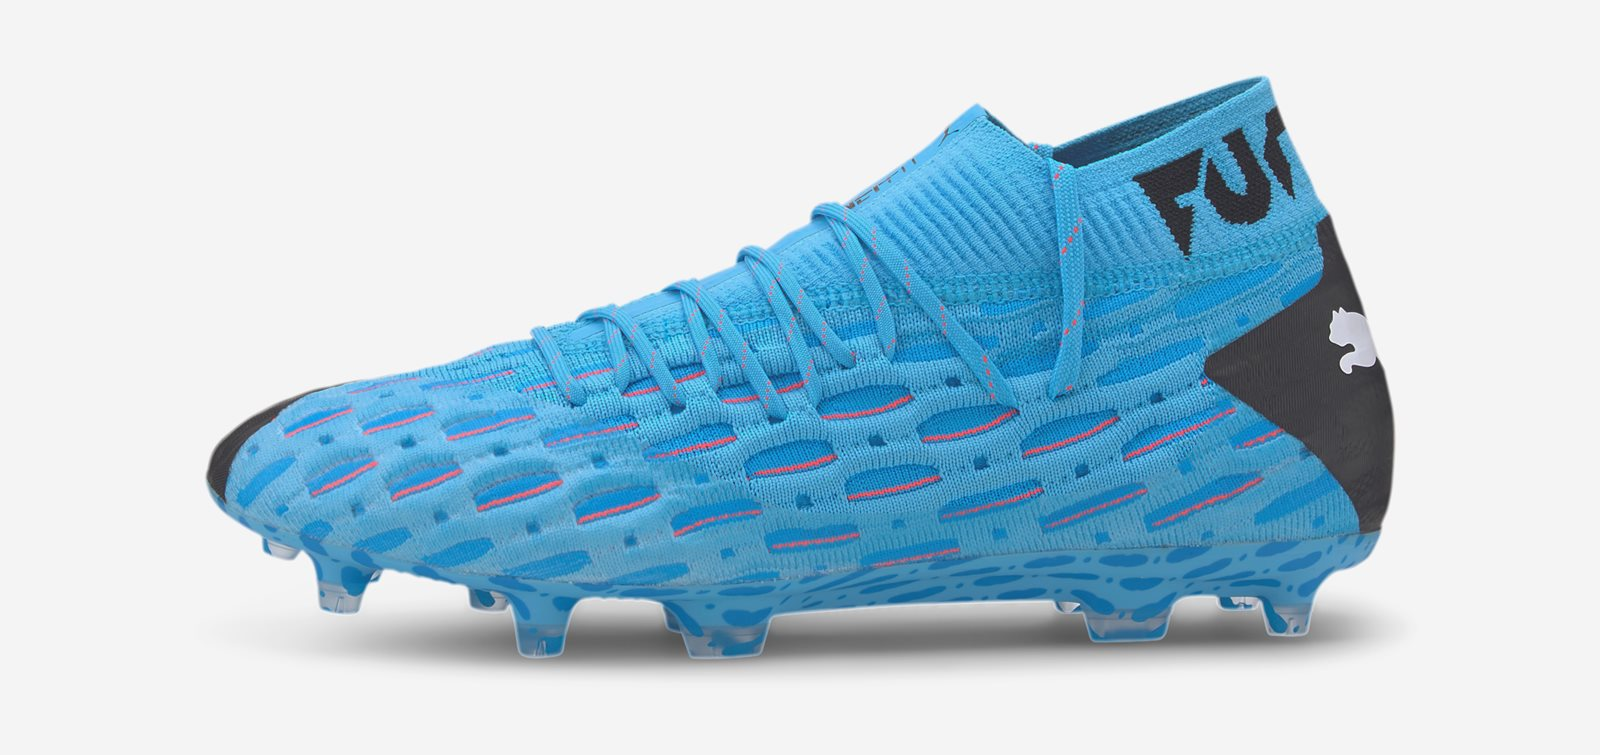 Kyle Taylor Football Boots